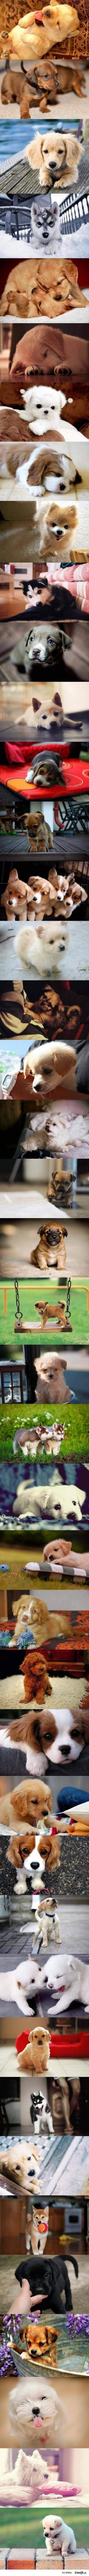 So. Many. PUPPIES!: Doggie, Animals, Cute Puppies, Cuteness Overload, Pet, Puppys, Puppies 3